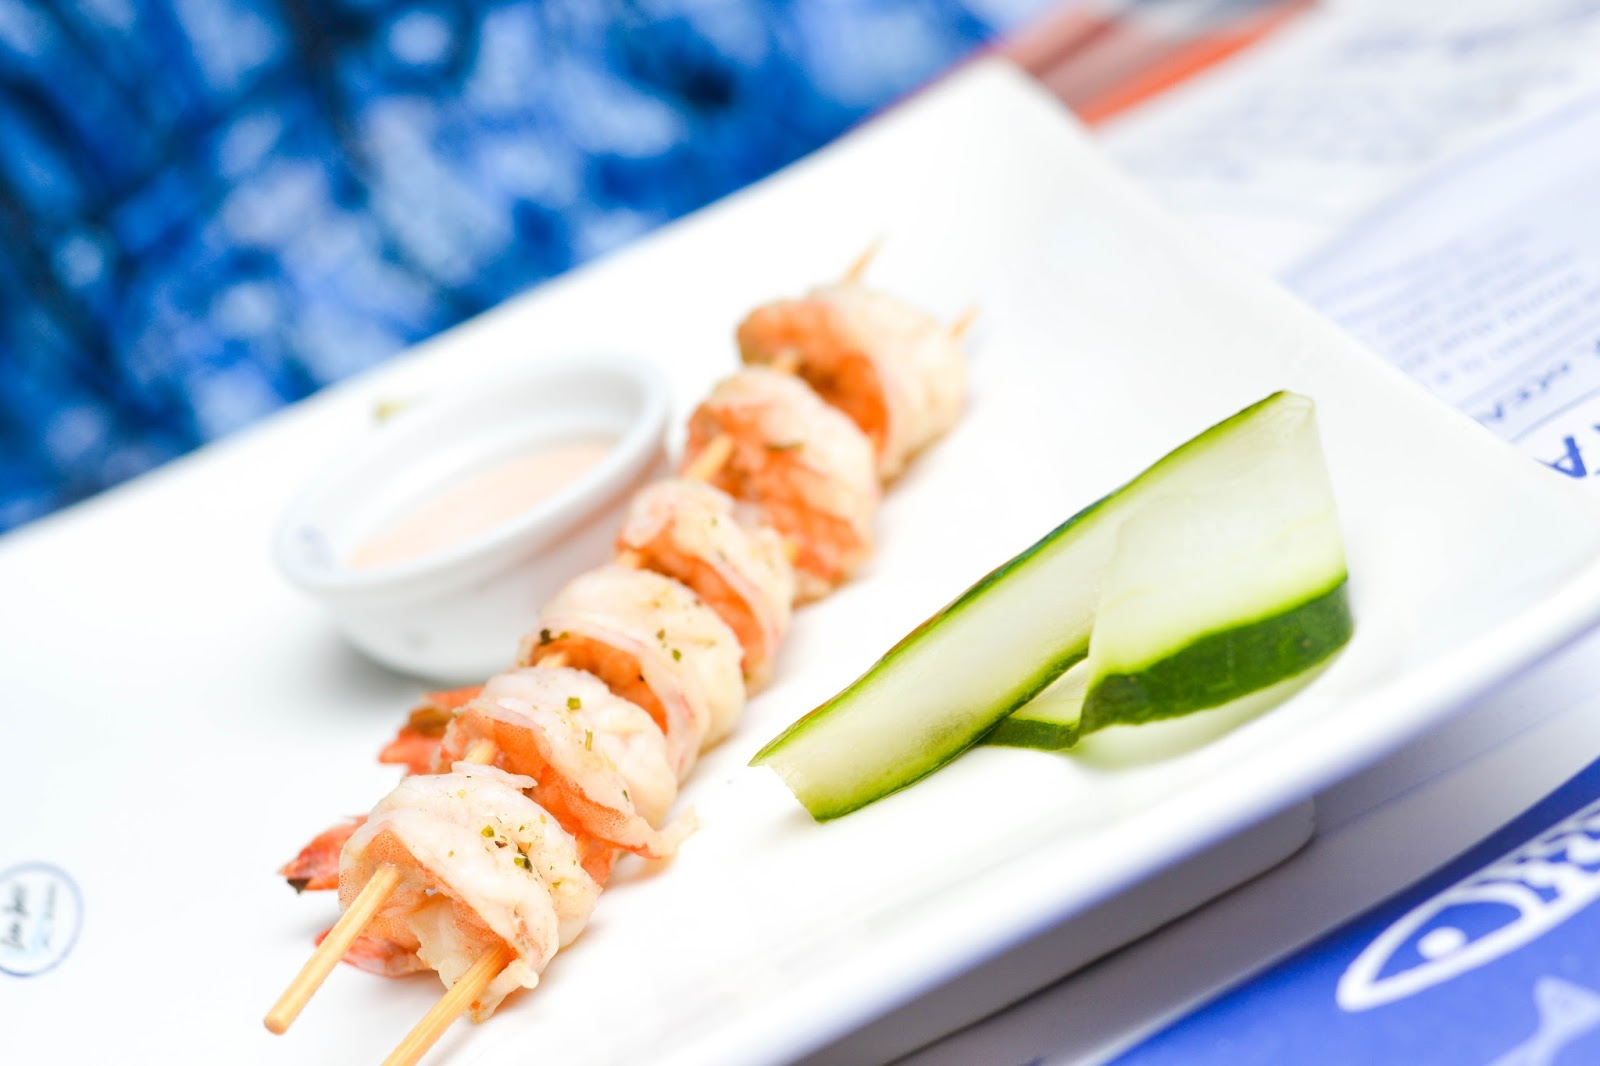 Zucchini and King Prawn Skewer from Ocean Basket